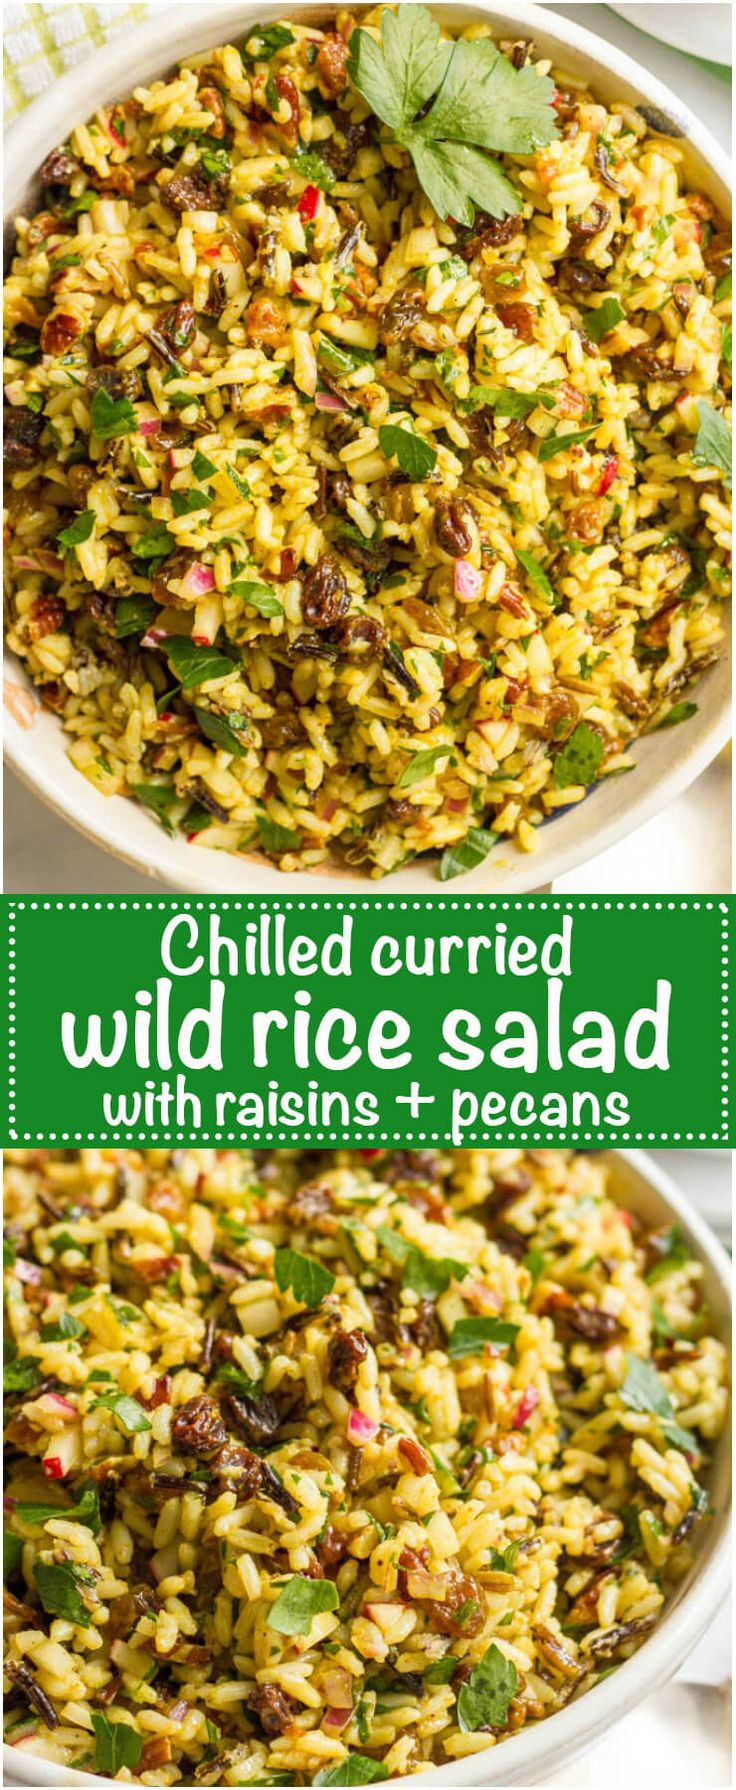 Cold curried wild rice salad with raisins and pecans - an addictive and easy side dish! | www.familyfoodonthetable.com | #ad @unclebensrice